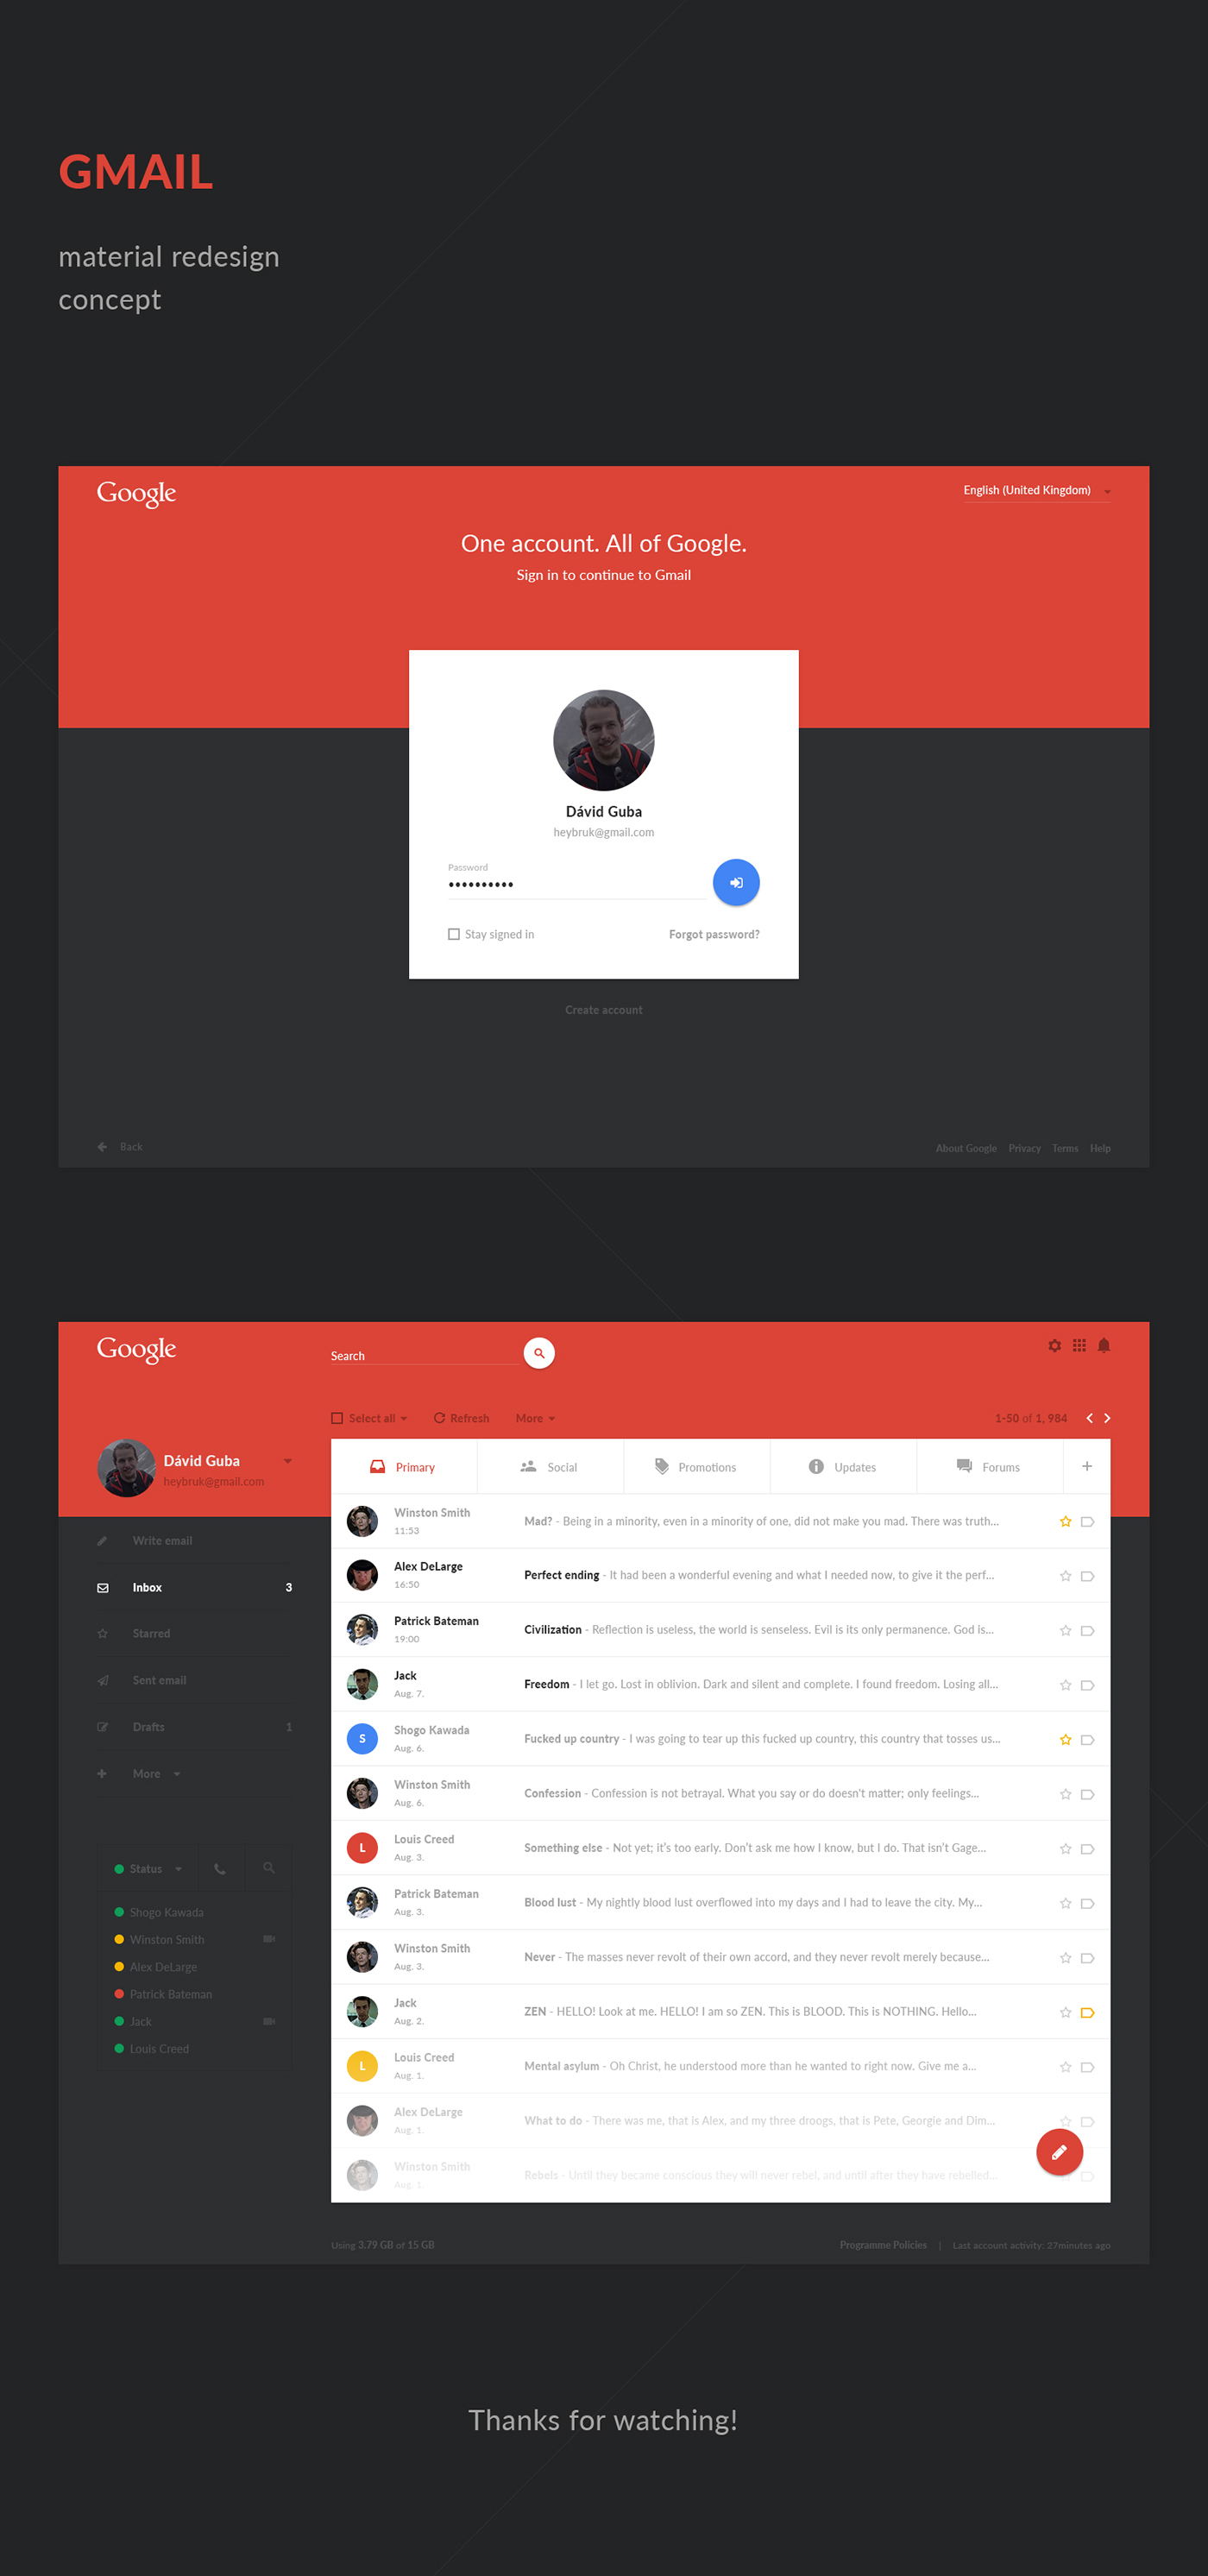 GMail google redesign material photoshop